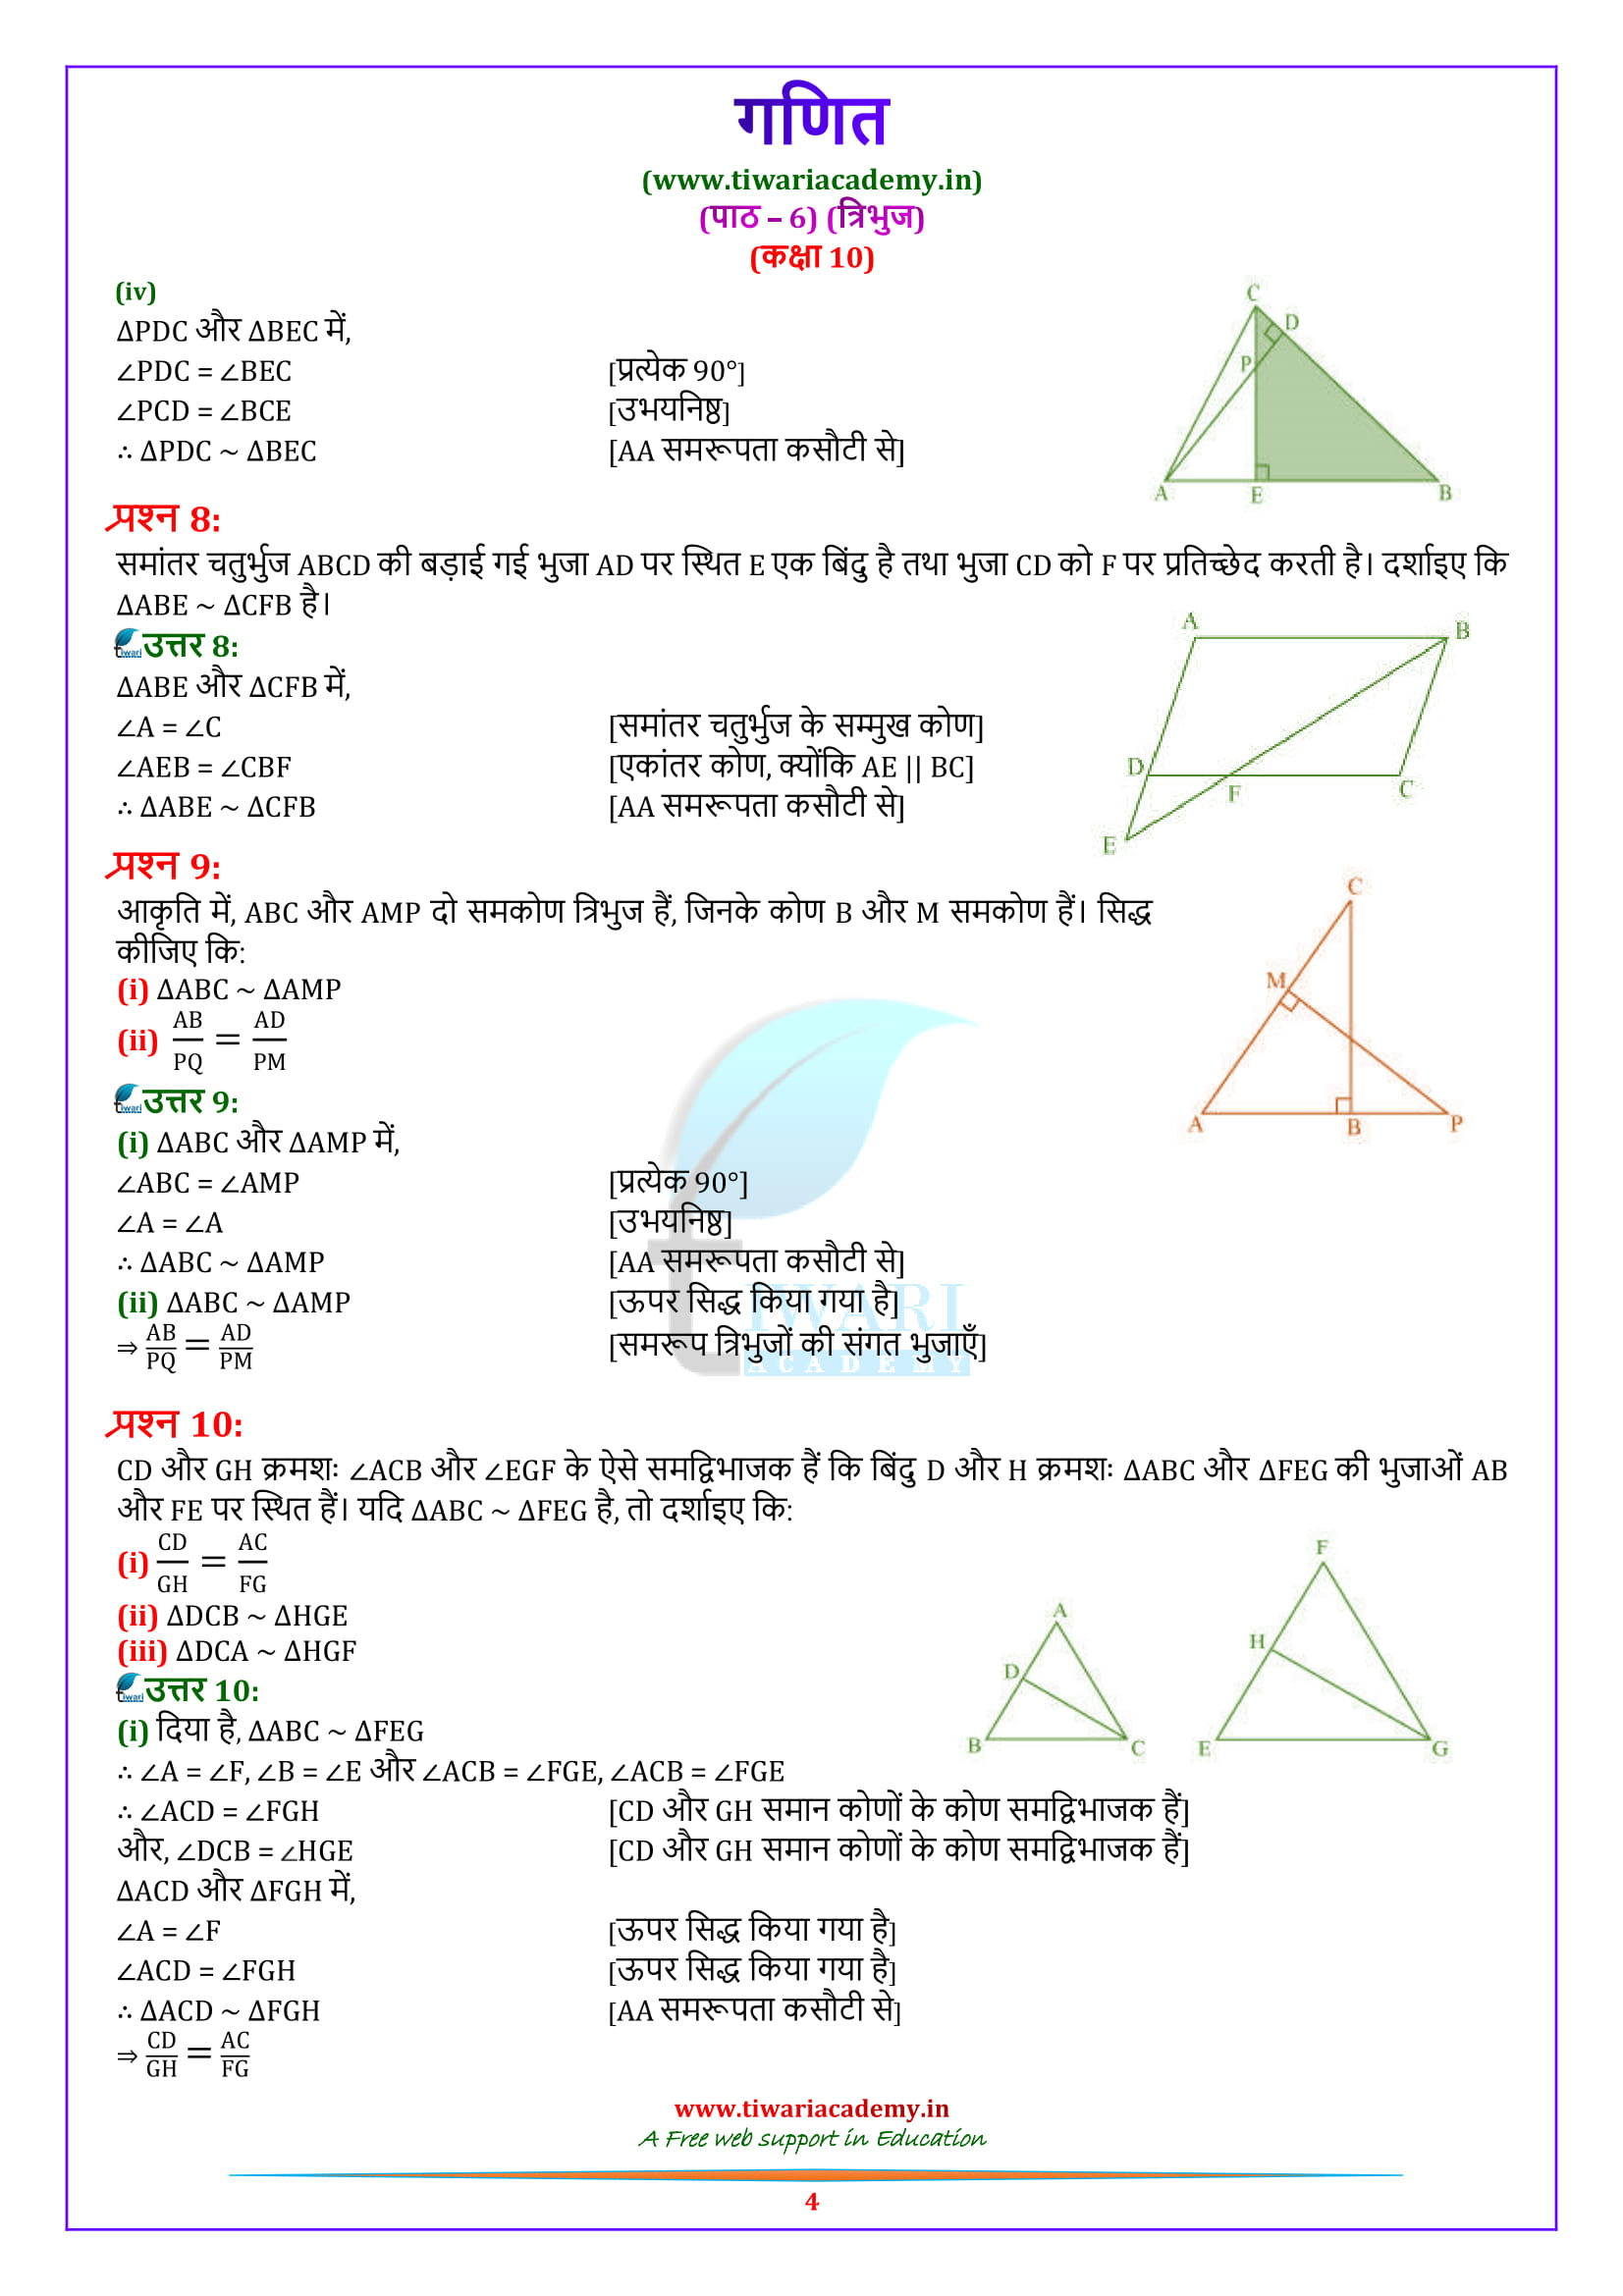 10 Maths Exercise 6.3 solutions all question answers in hindi